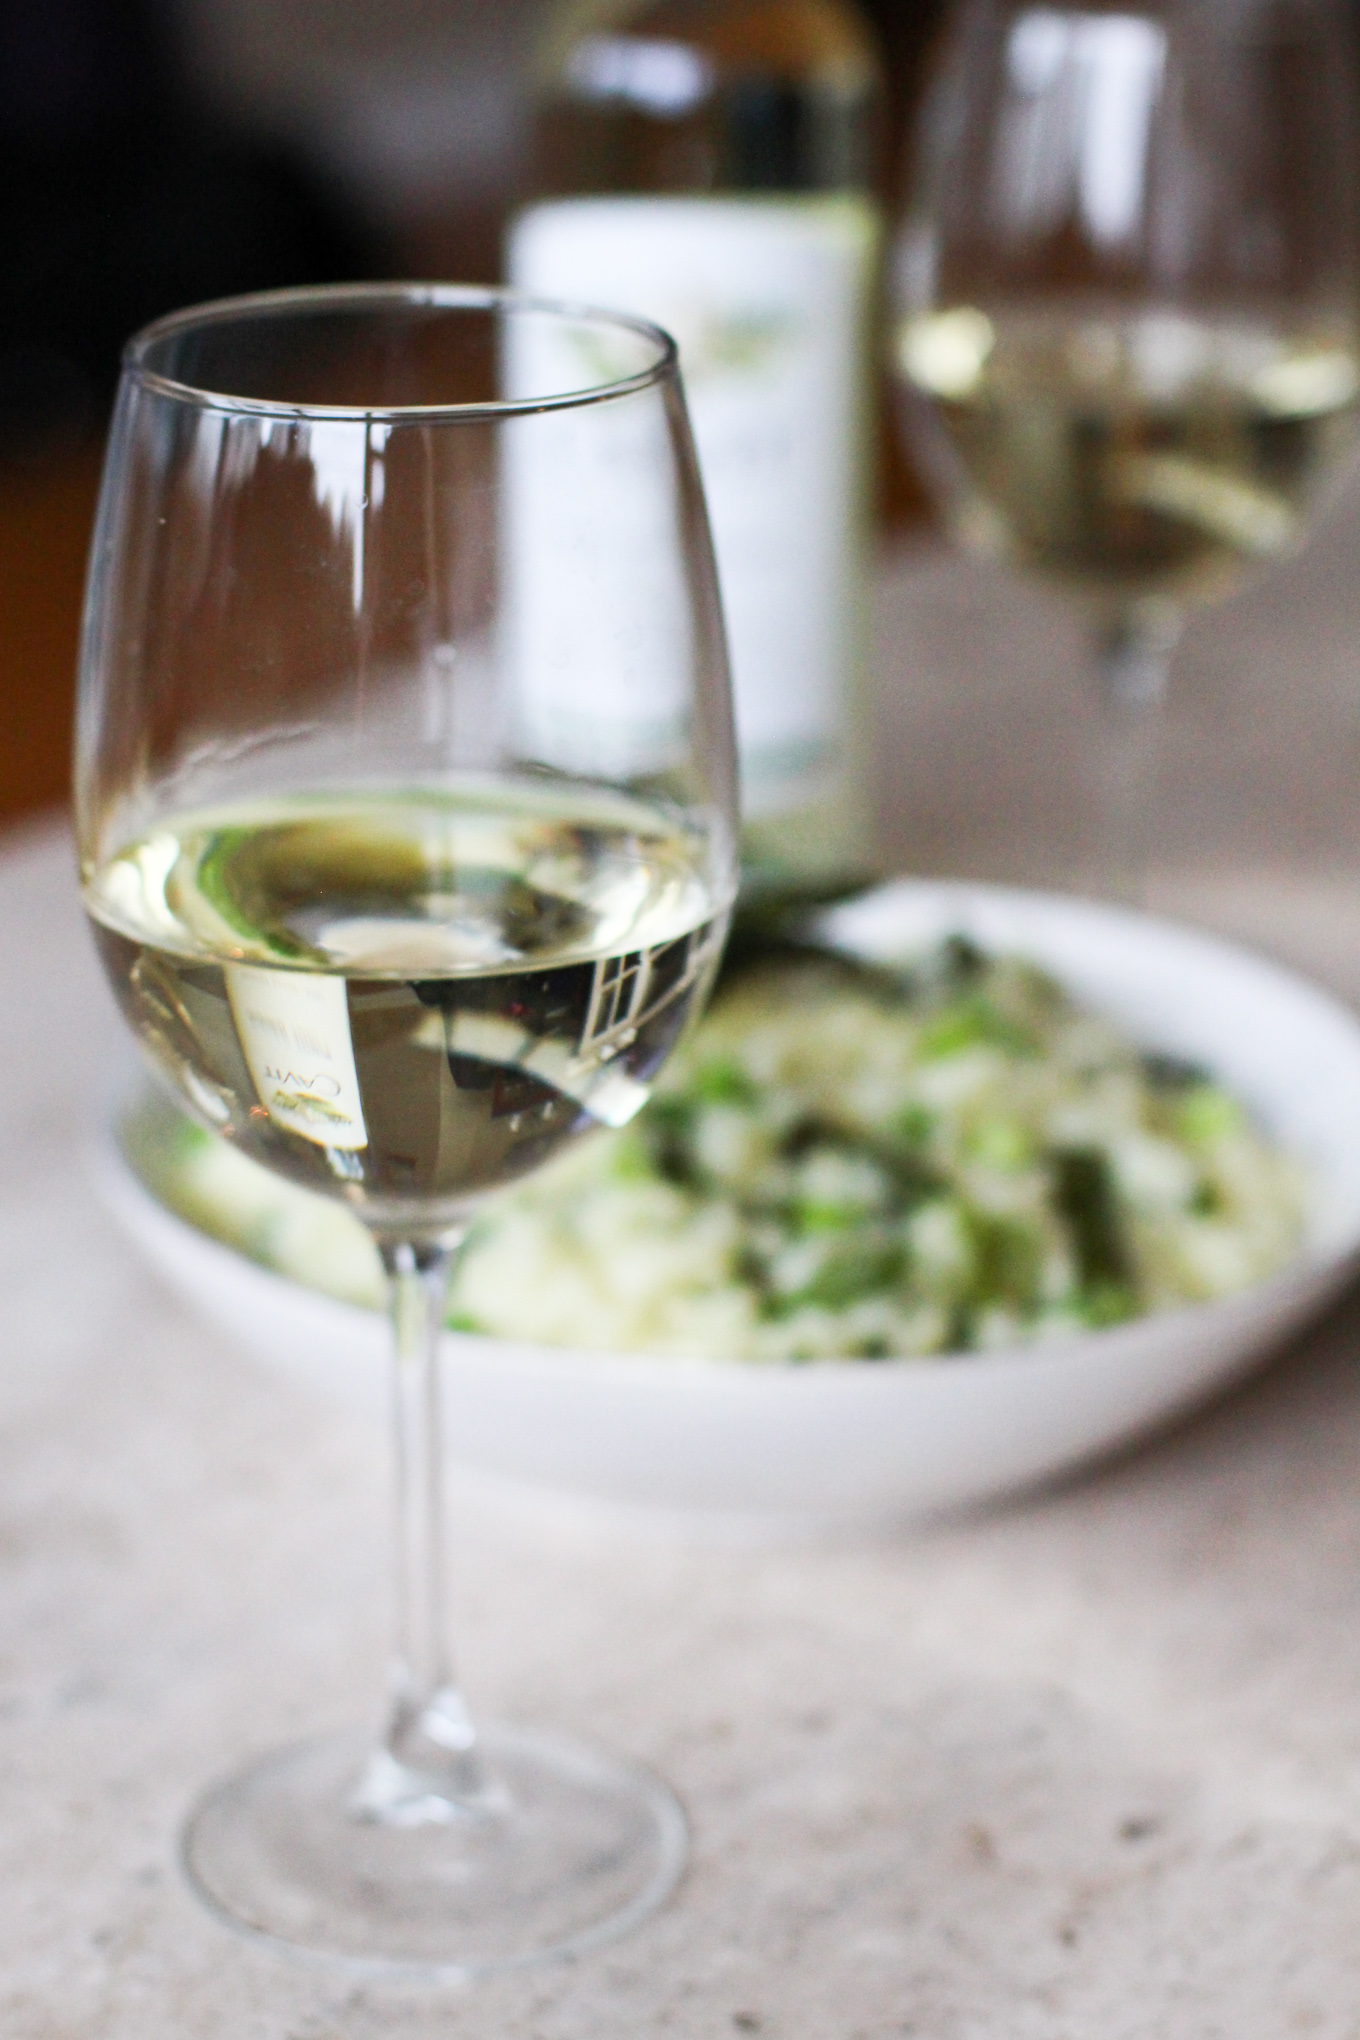 Spring Vegetable Risotto and Cavit Pinto Grigio - Lake Shore Lady #NationalPinotGrigioDay